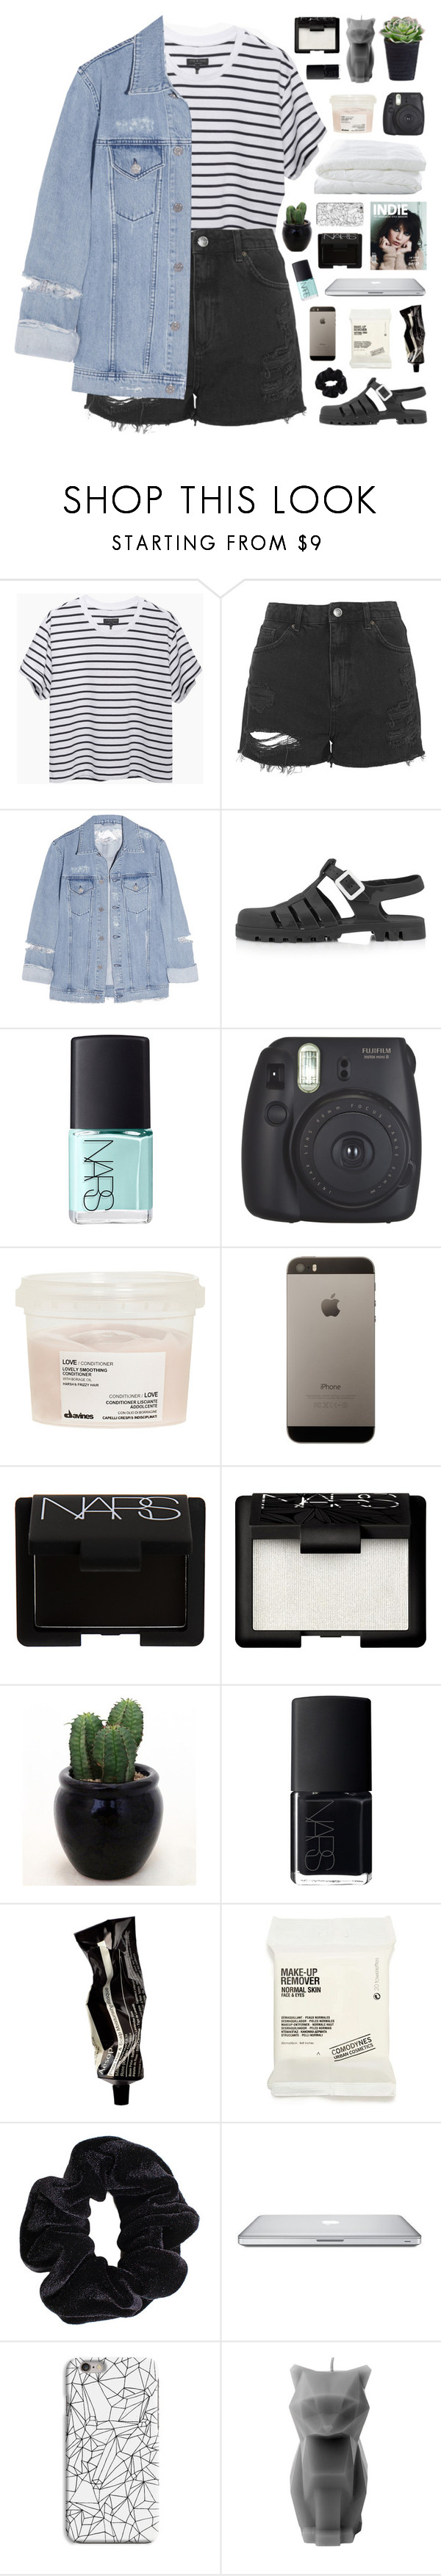 """""""CRAWLING BACK TO YOU"""" by talibird25 ❤ liked on Polyvore featuring rag & bone, Topshop, Acne Studios, NARS Cosmetics, Davines, Aesop, Comodynes, American Apparel, INDIE HAIR and PyroPet"""